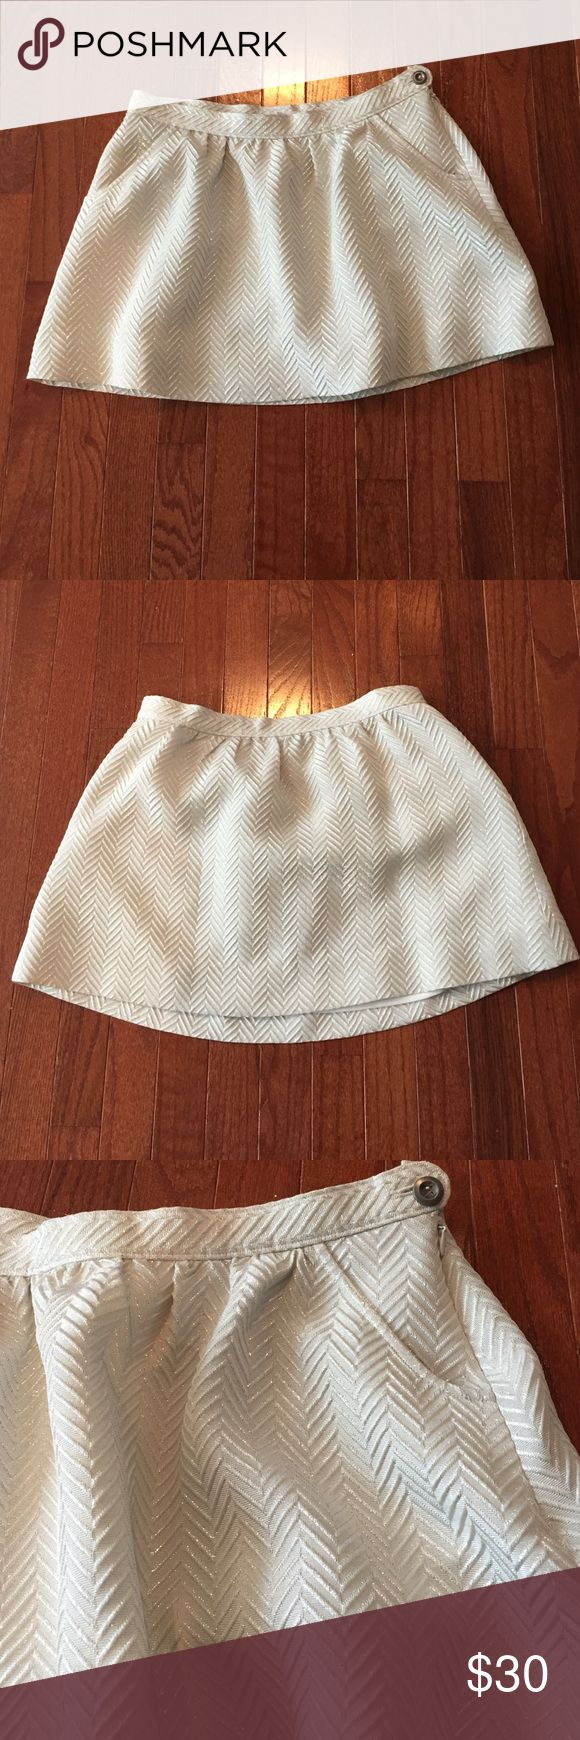 J. Crew Skirt Purchased from J. Crew outlet. Never worn, no stains. Working side zipper. Original button in place and back up button still sewn into skirt. Fabric is creamy metallic color. Tag states fabric as 61% wool, 21% silk, 10% metallic and 8% cotton. J. Crew Skirts Mini